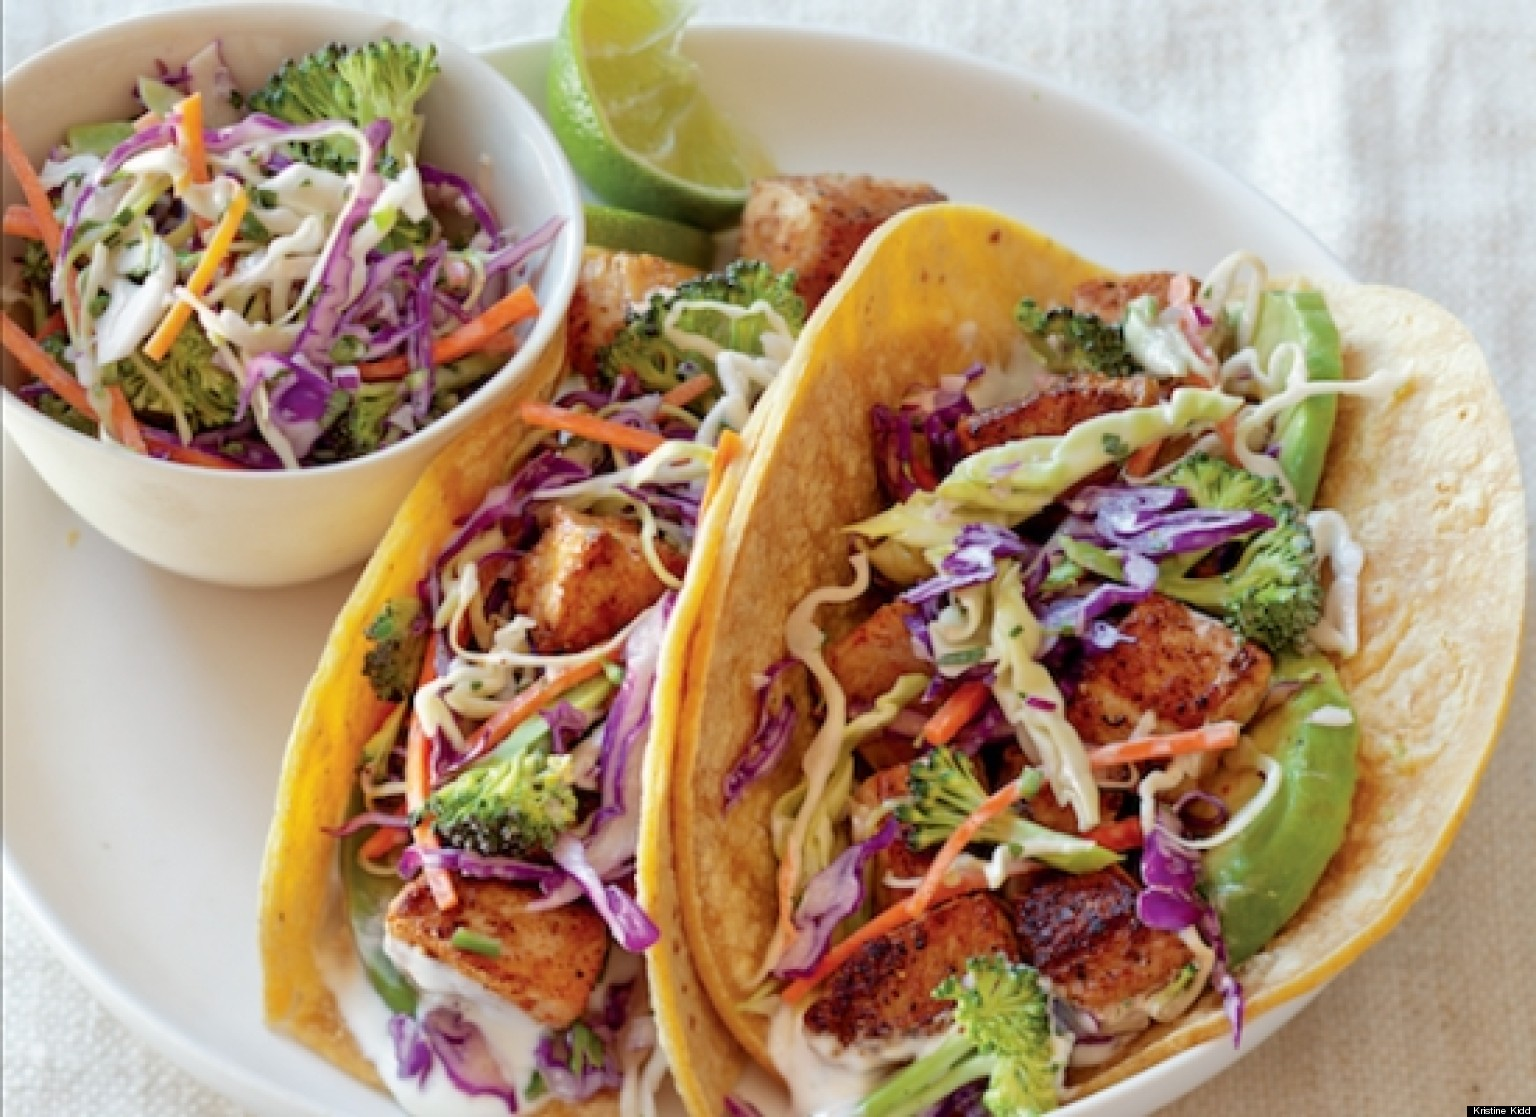 Fish tacos recipe with broccoli slaw and lime cream sauce for Fish taco recipe